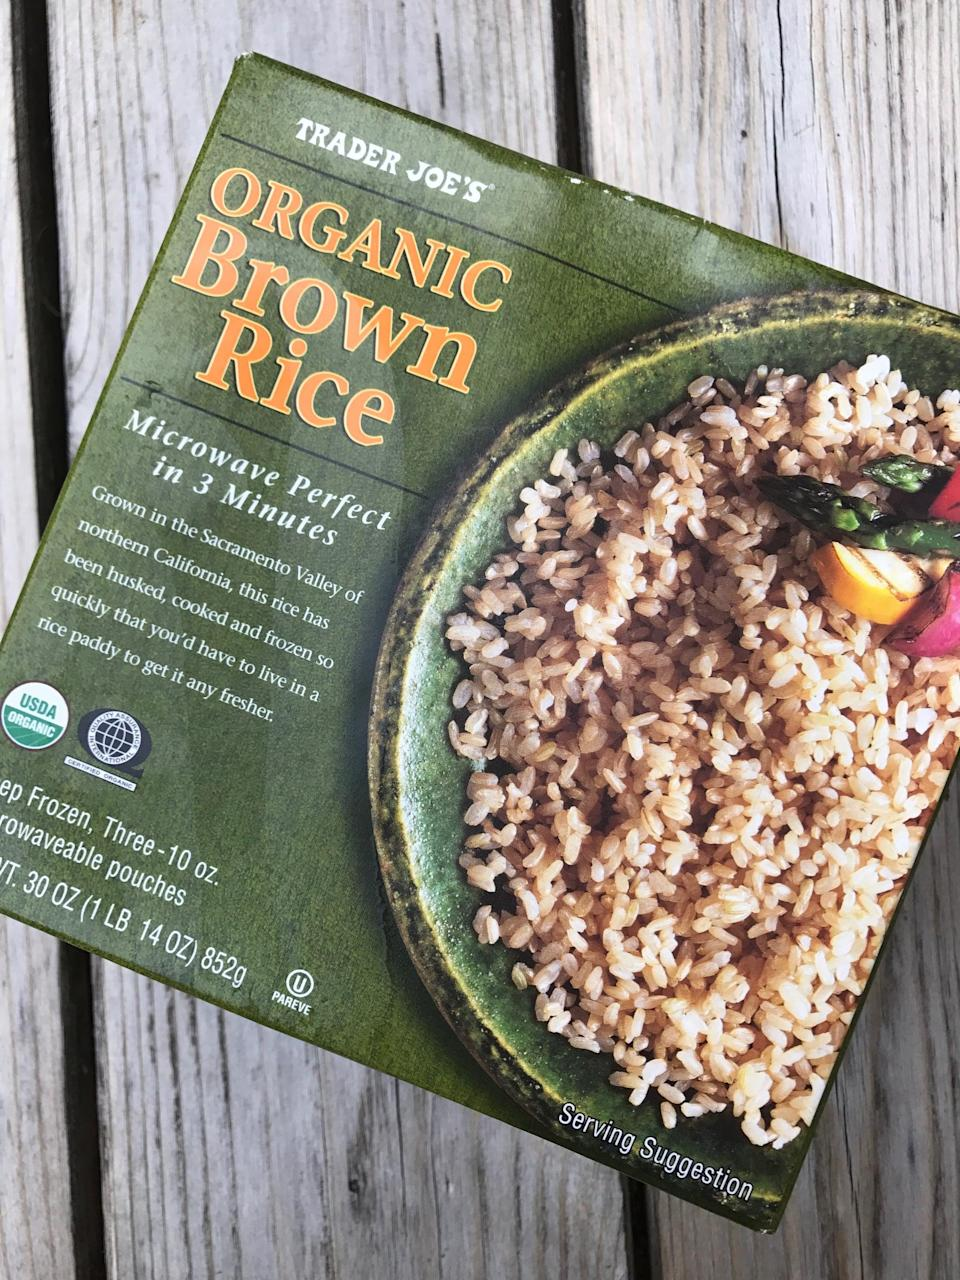 <p>While I always try to batch cook brown rice on Sunday, if I don't have time, this is great to have in the freezer in a pinch! Simply throw a bag in the microwave, and it's ready to enjoy with steamed veggies, curry, or stir-fry.</p>